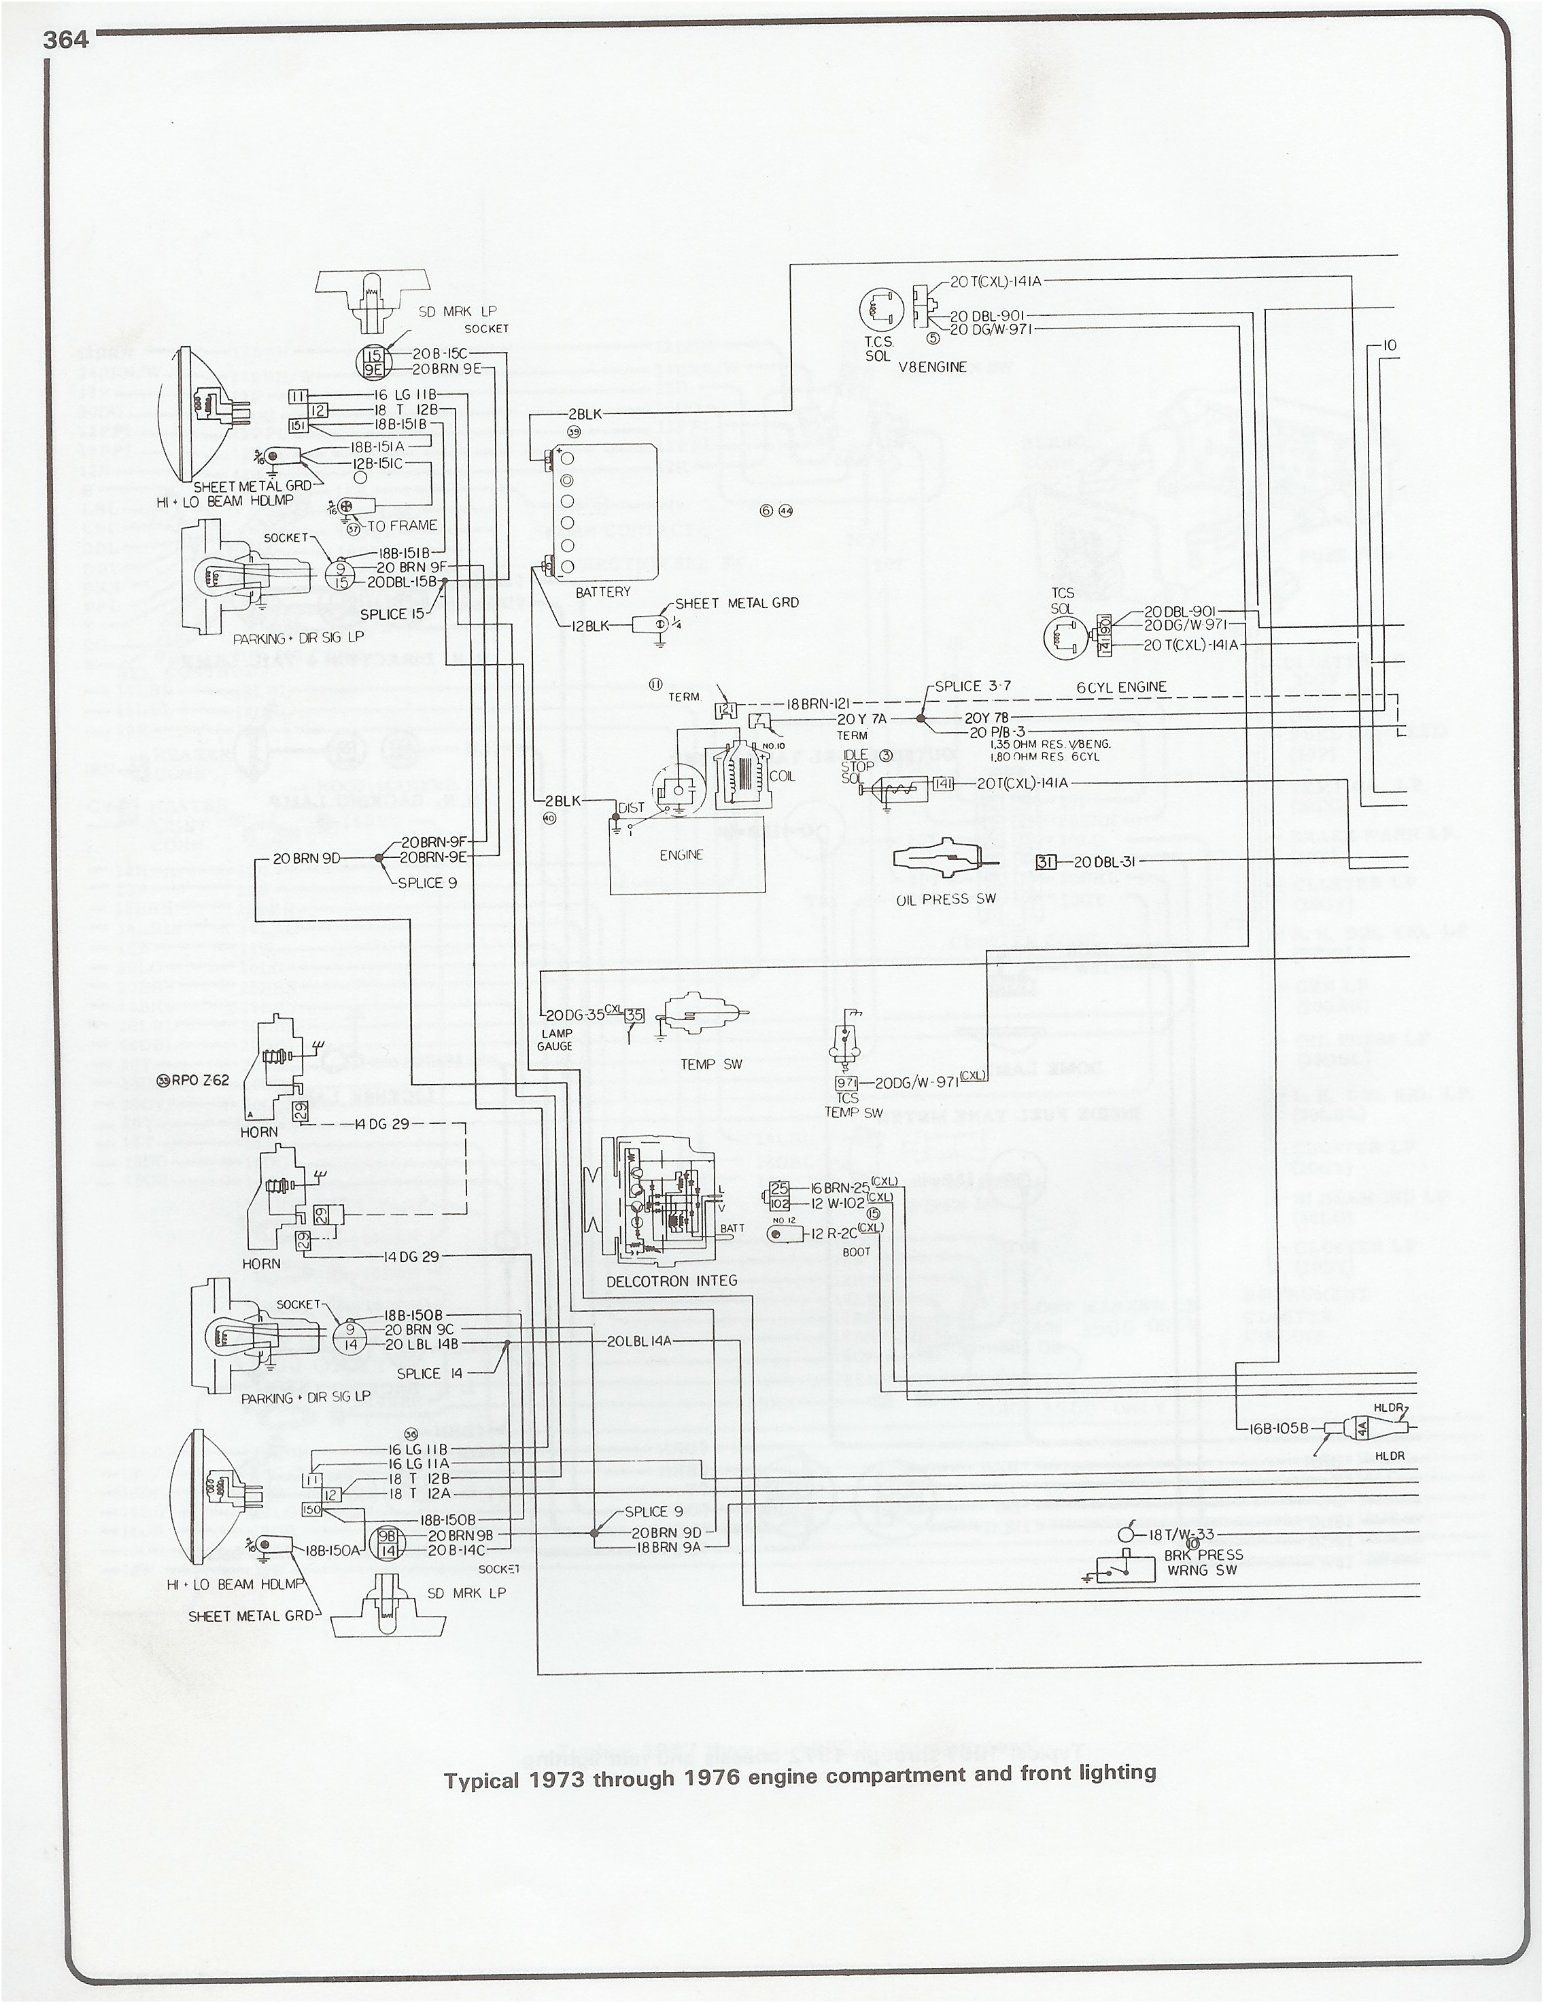 small resolution of 1975 chevy truck wiring diagram wiring diagram new 1975 c10 pickup wiring diagram data wiring diagram